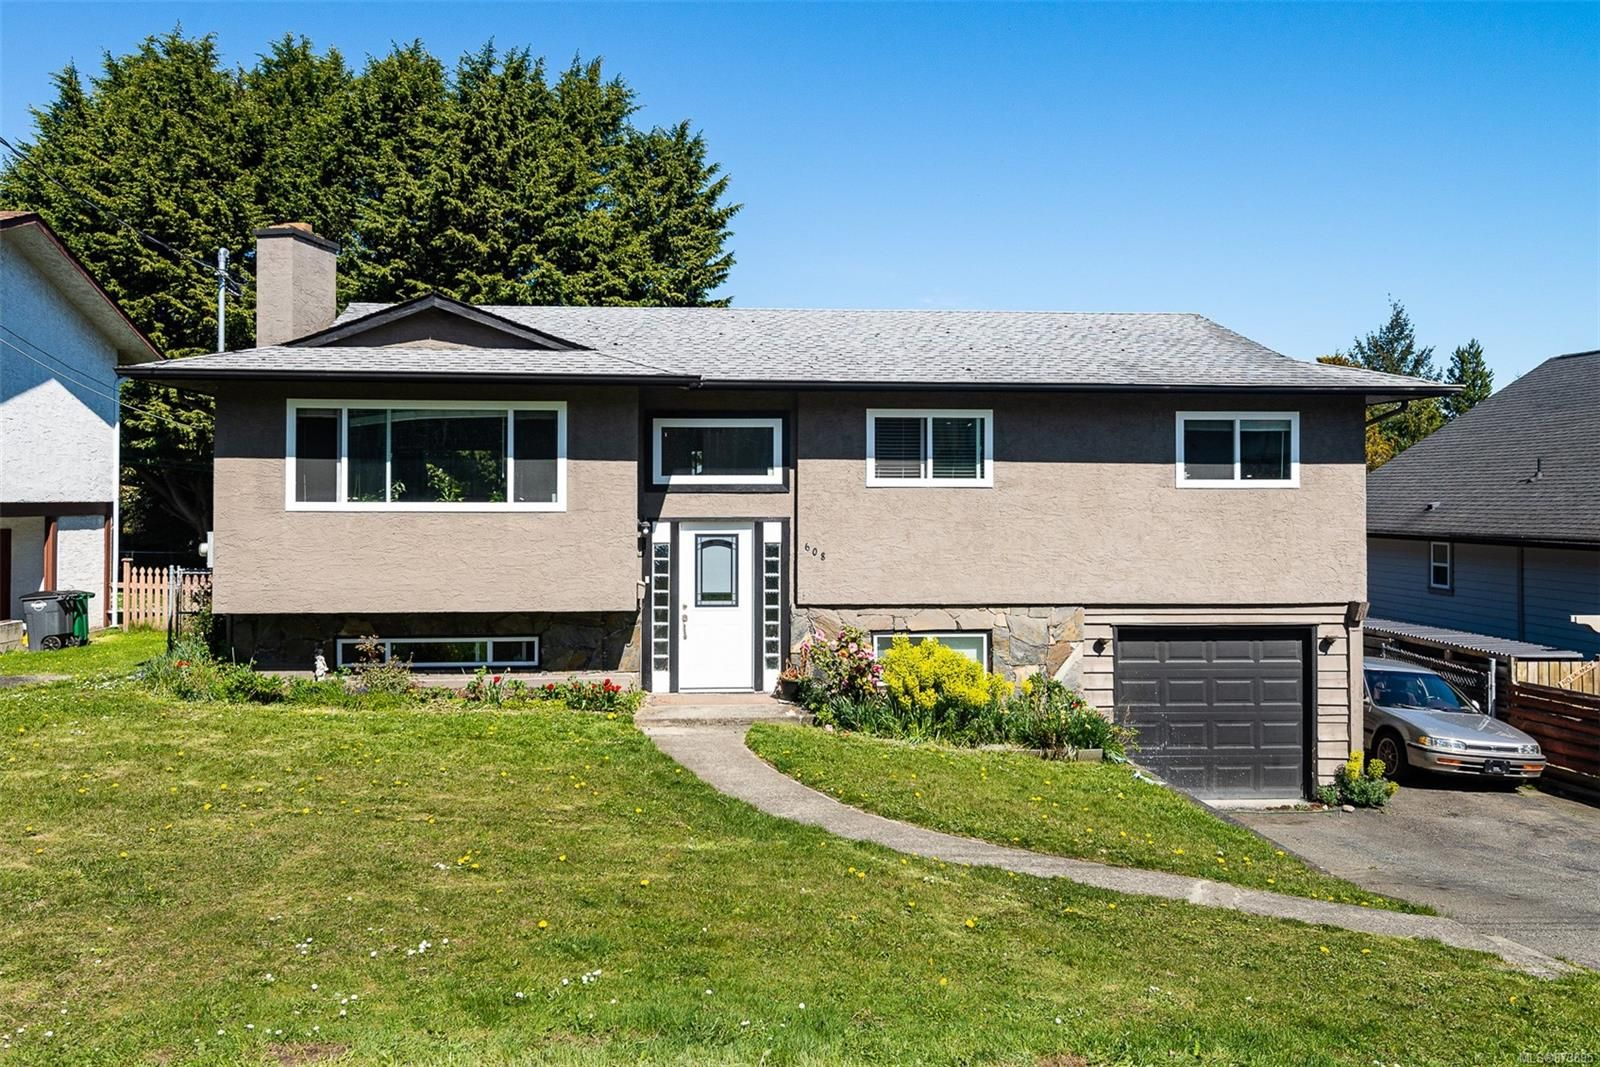 Main Photo: 608 Ralph St in : SW Glanford House for sale (Saanich West)  : MLS®# 873695